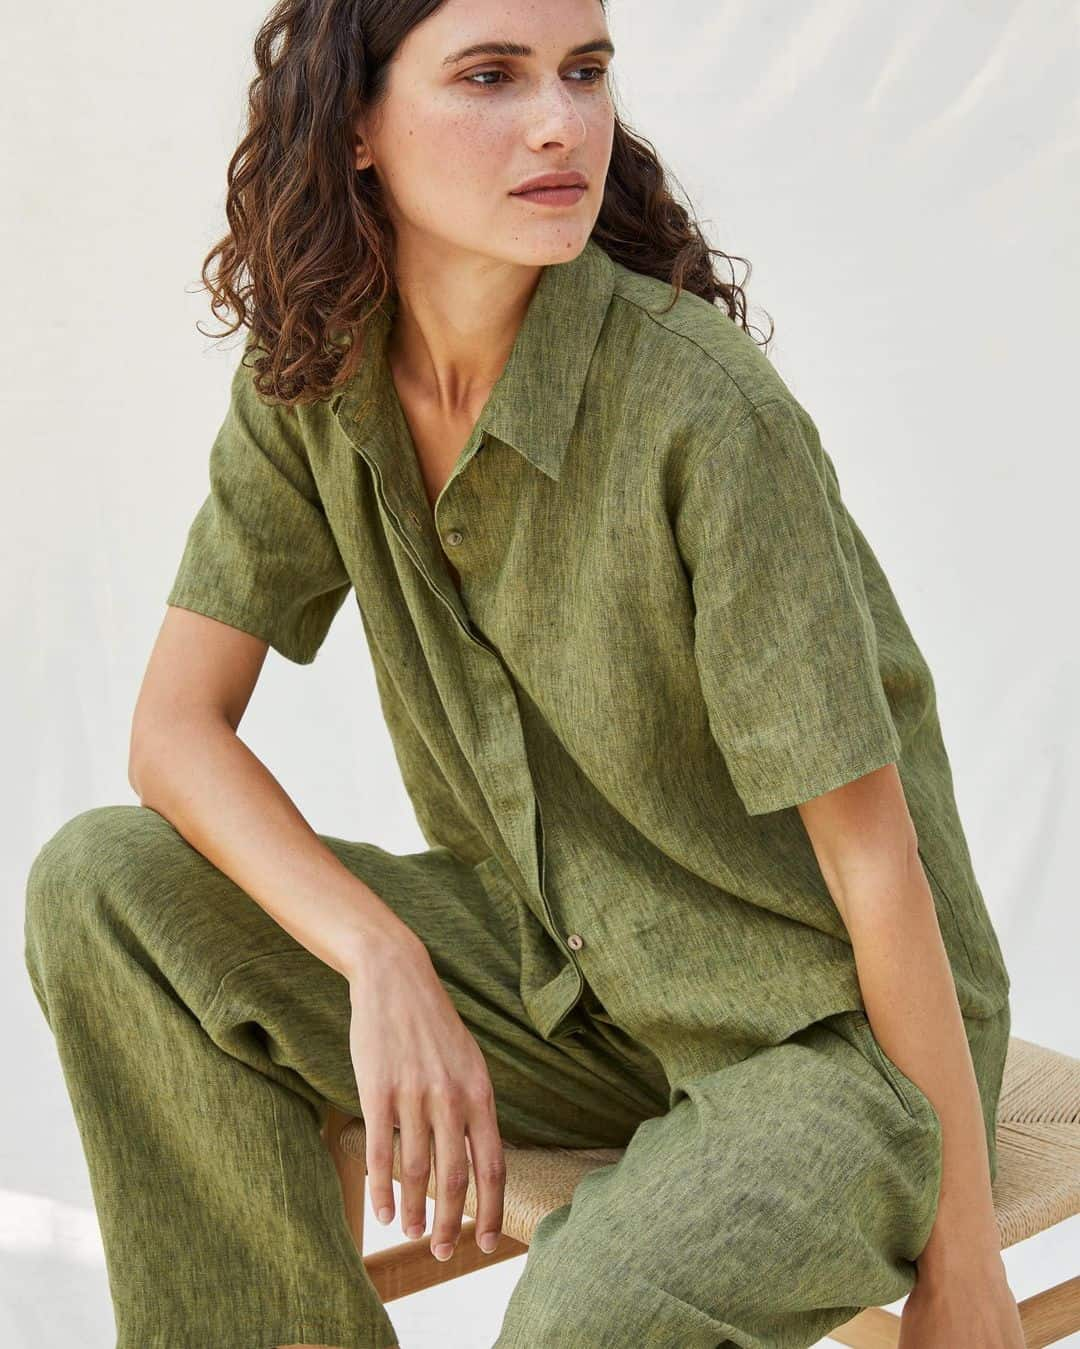 woman in linen shirt and pants